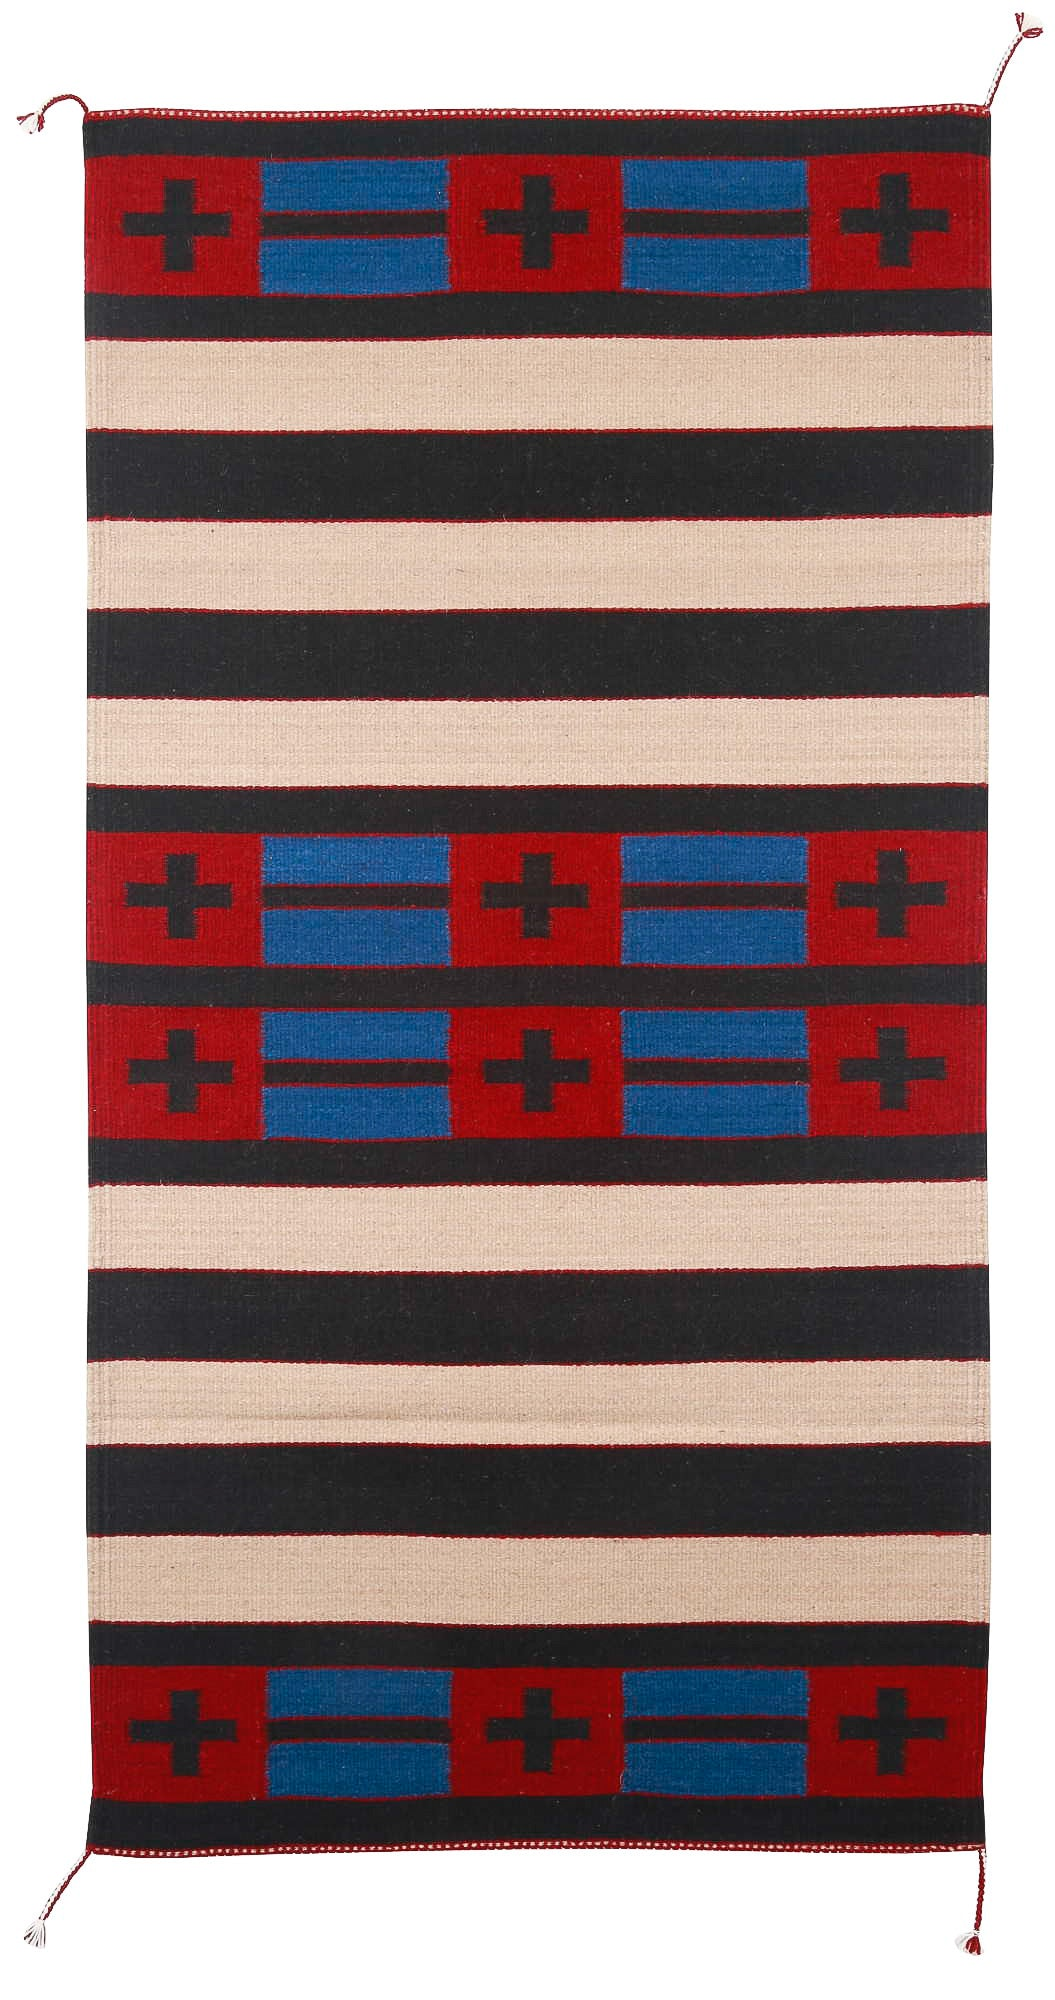 Handwoven Zapotec Indian Rug - Second Phase with Crosses Wool Oaxacan Textile